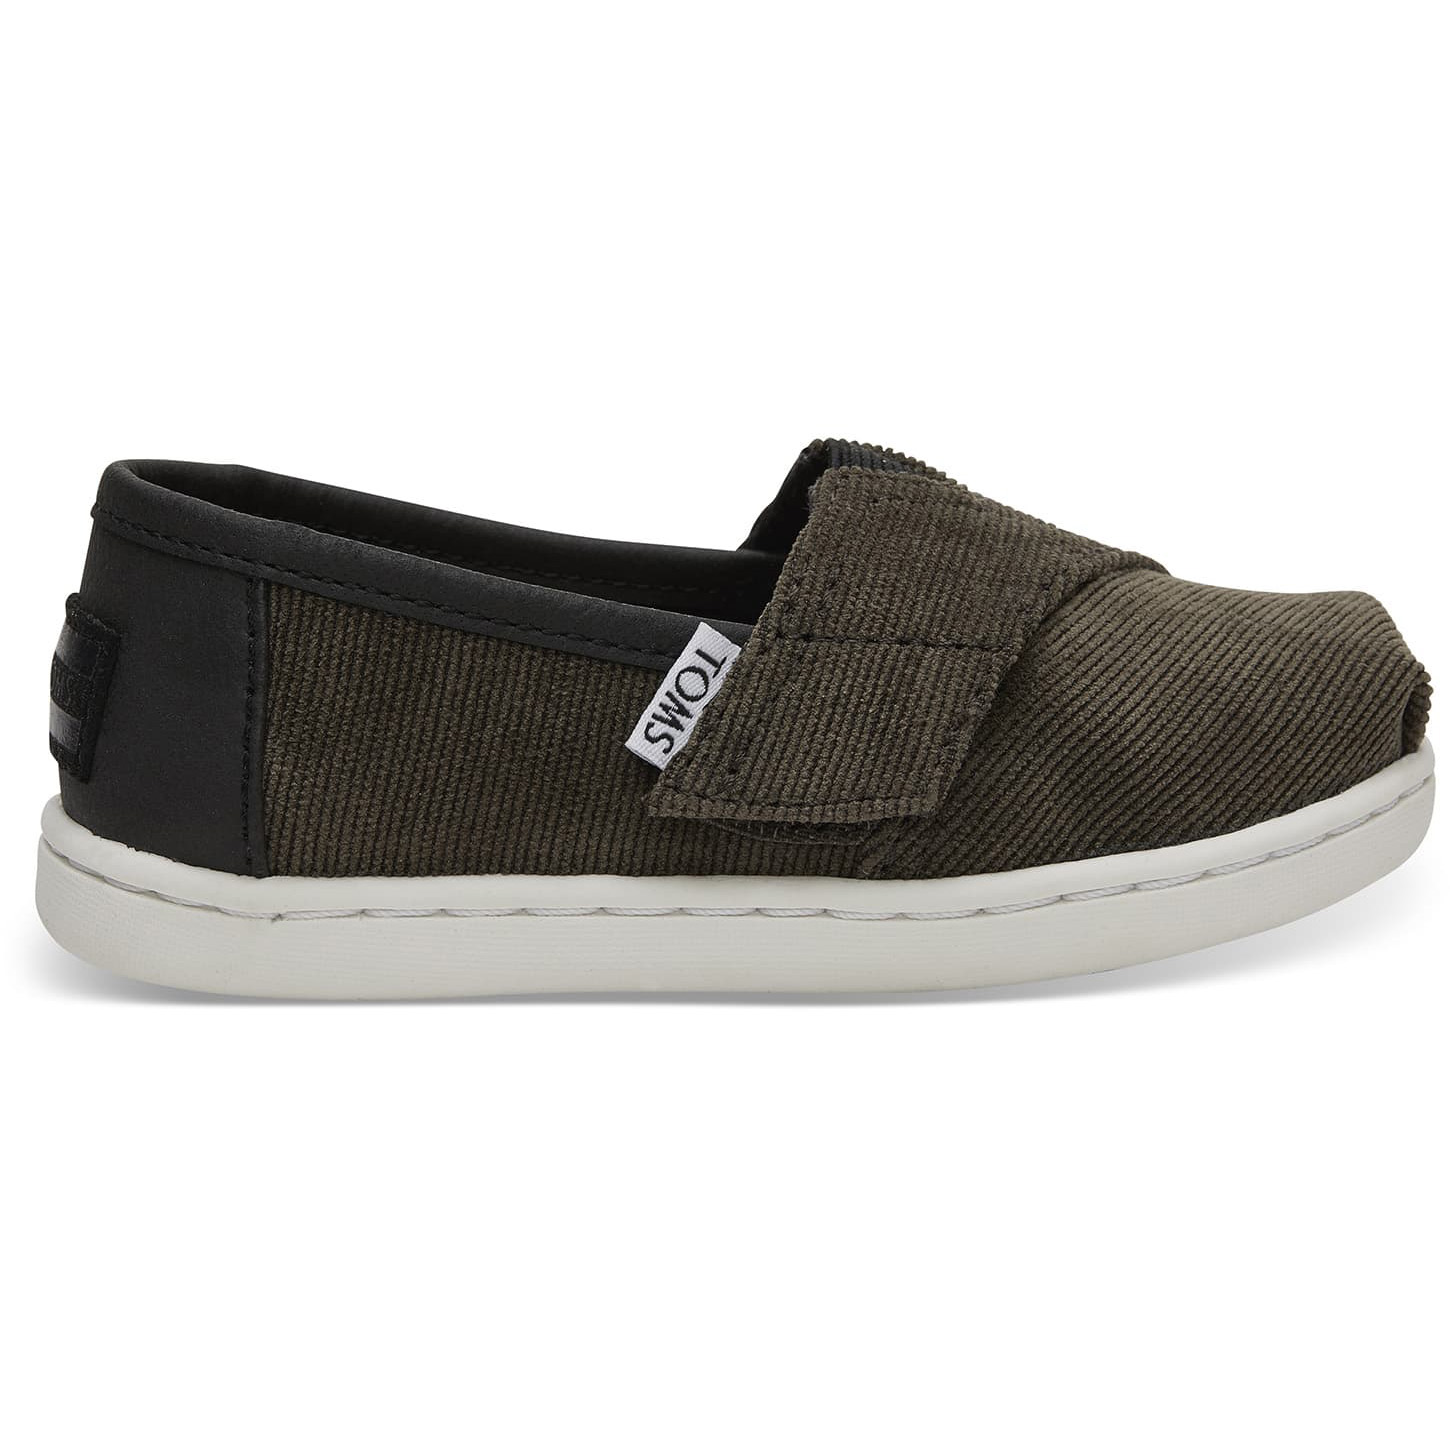 7b12d1edbea Shoes - TOMS One for One® - Mama Eco